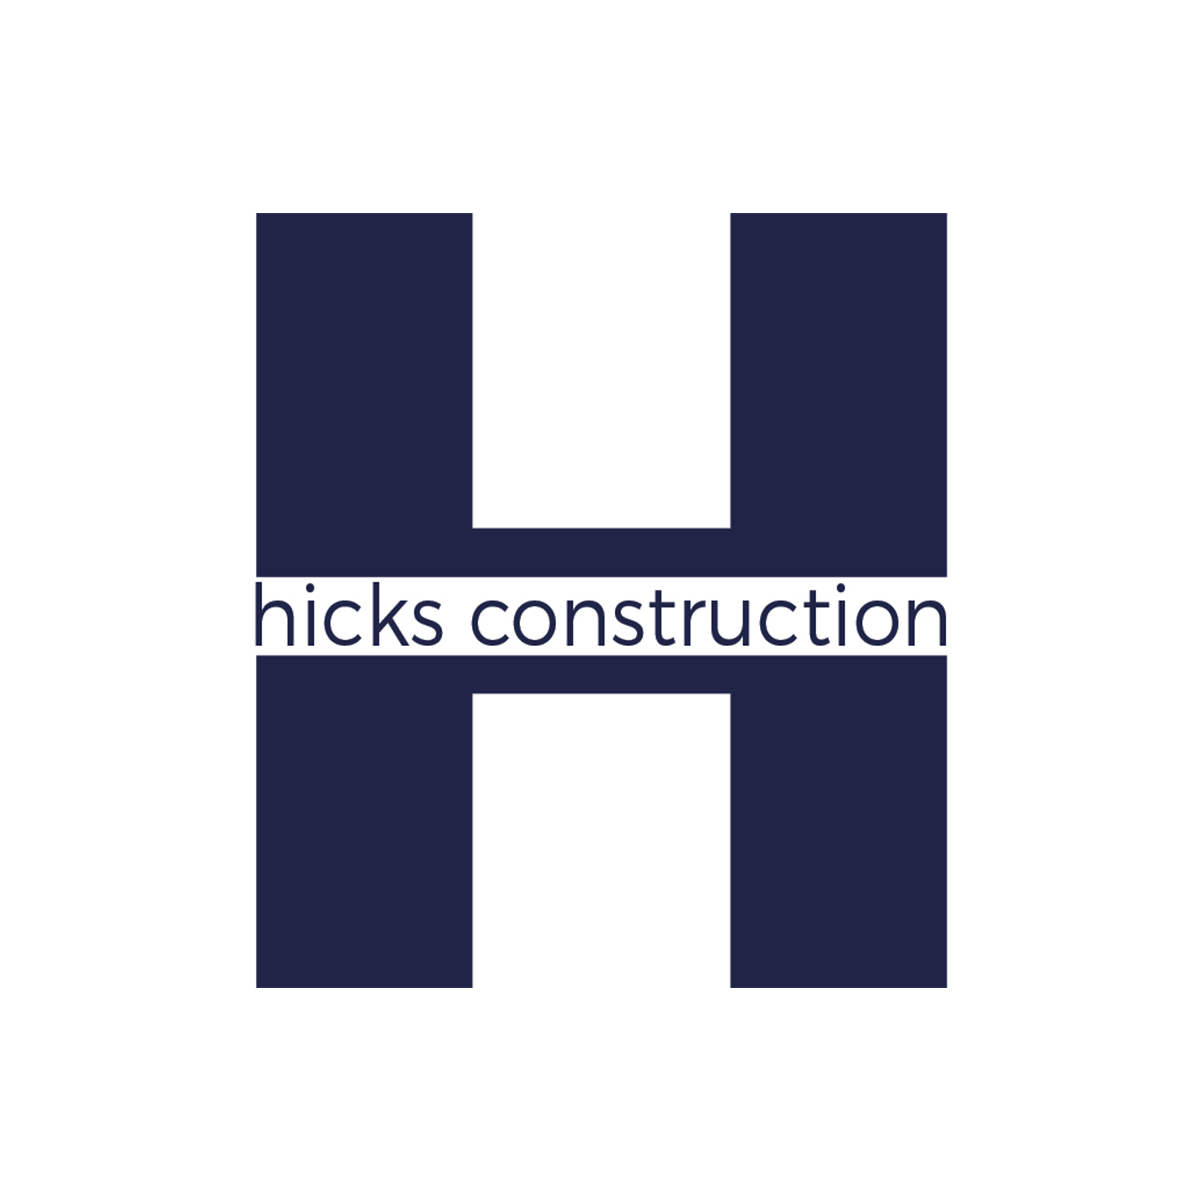 Hicks Construction   Hicks Construction specializes in general contracting work. They've been in business for years, but have never had a logo or any brand work done. They've always gone by word-of-mouth. They asked me to design a simple logo and a business card to get their branding started. I used a combination of Illustrator, Photoshop, and InDesign to create their logo and business cards.